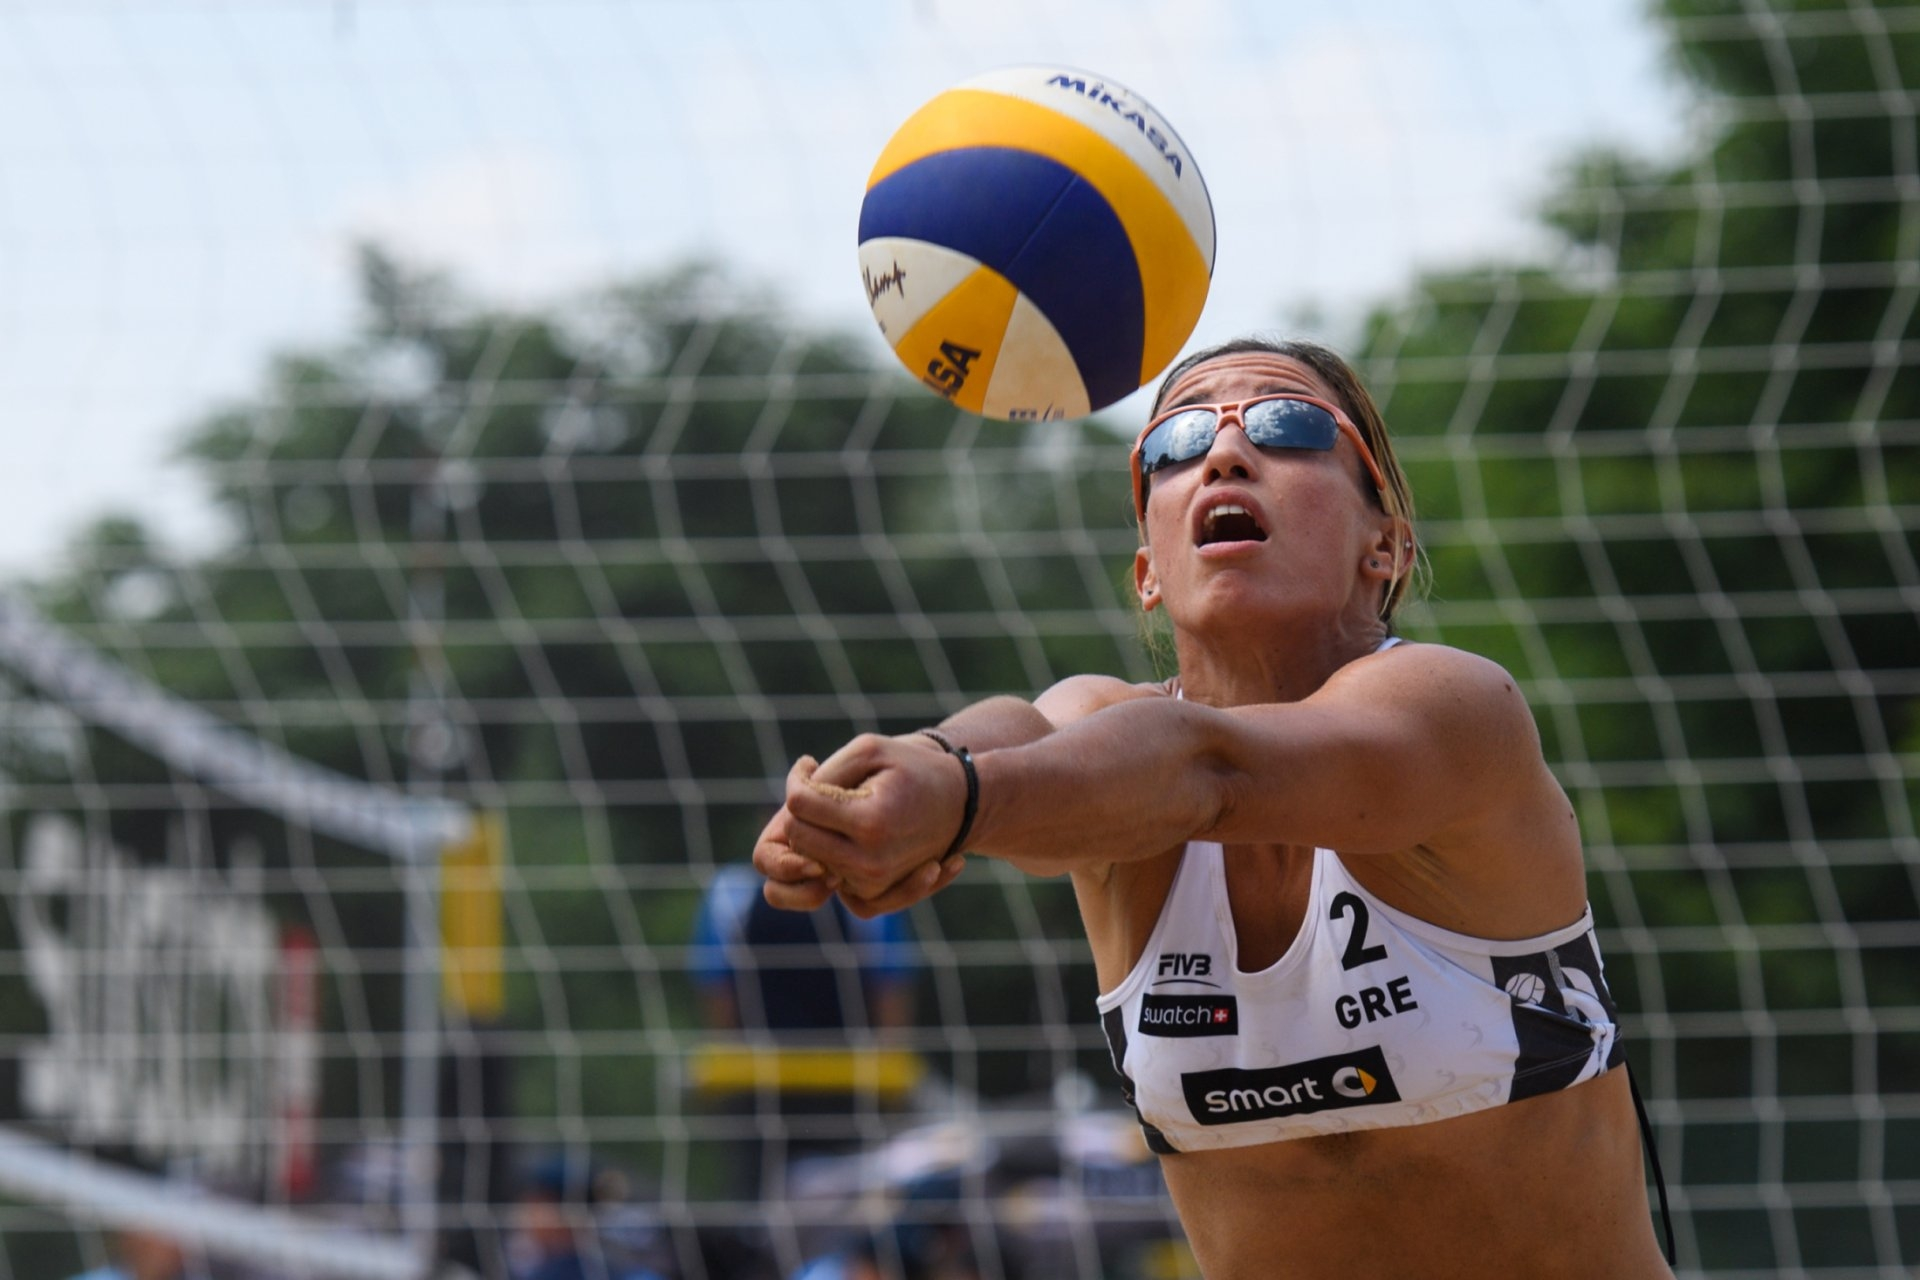 Arvaniti has last competed in the 2016 Klagenfurt Major (Photocredit: FIVB)